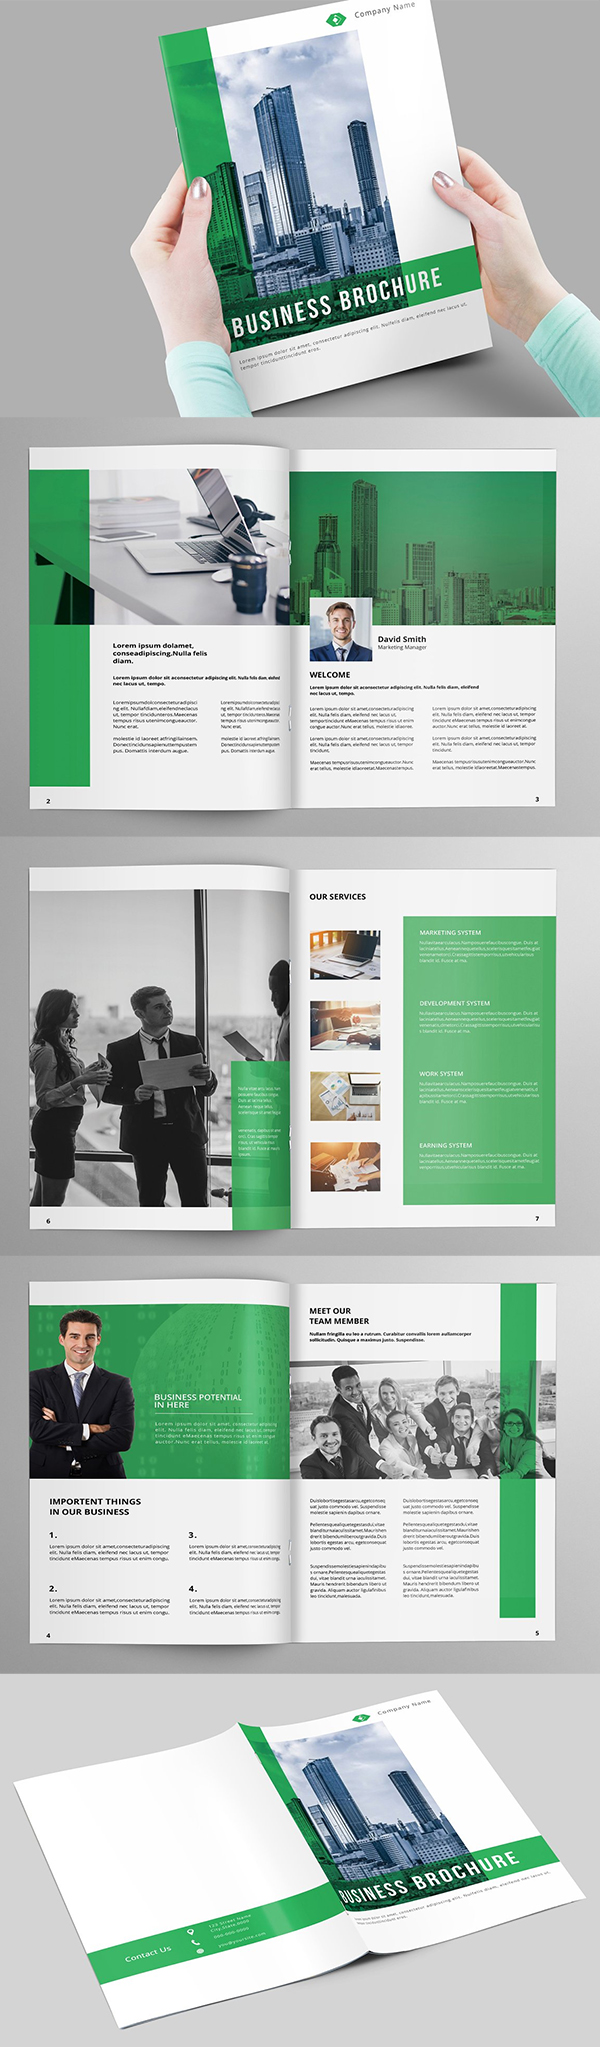 Elegant Business Brochure Template